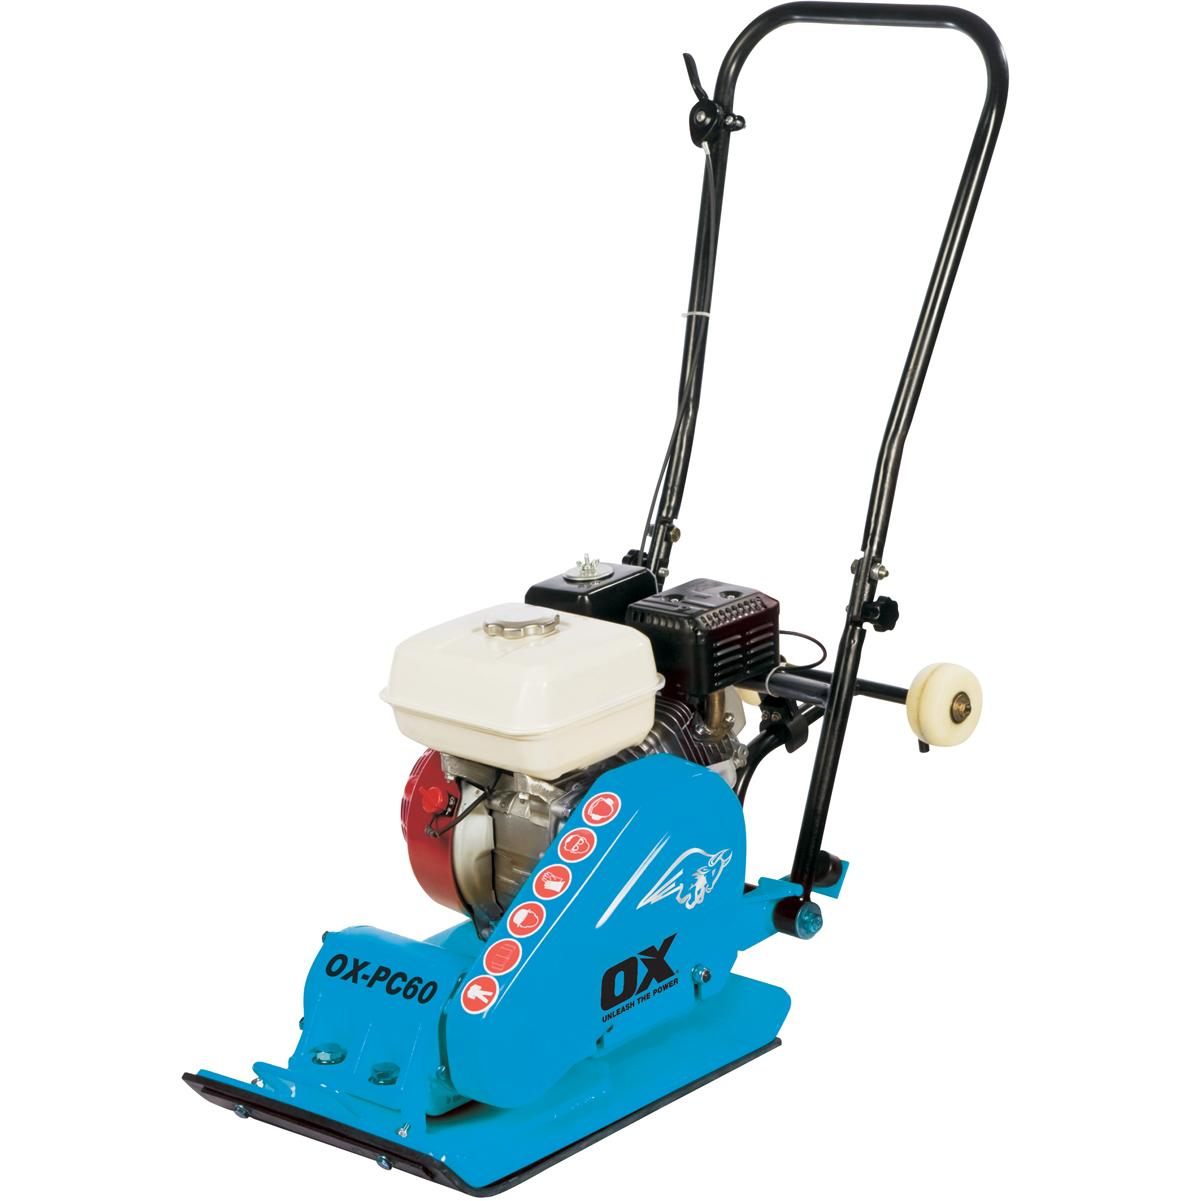 OX Prof Plate Compactor - small